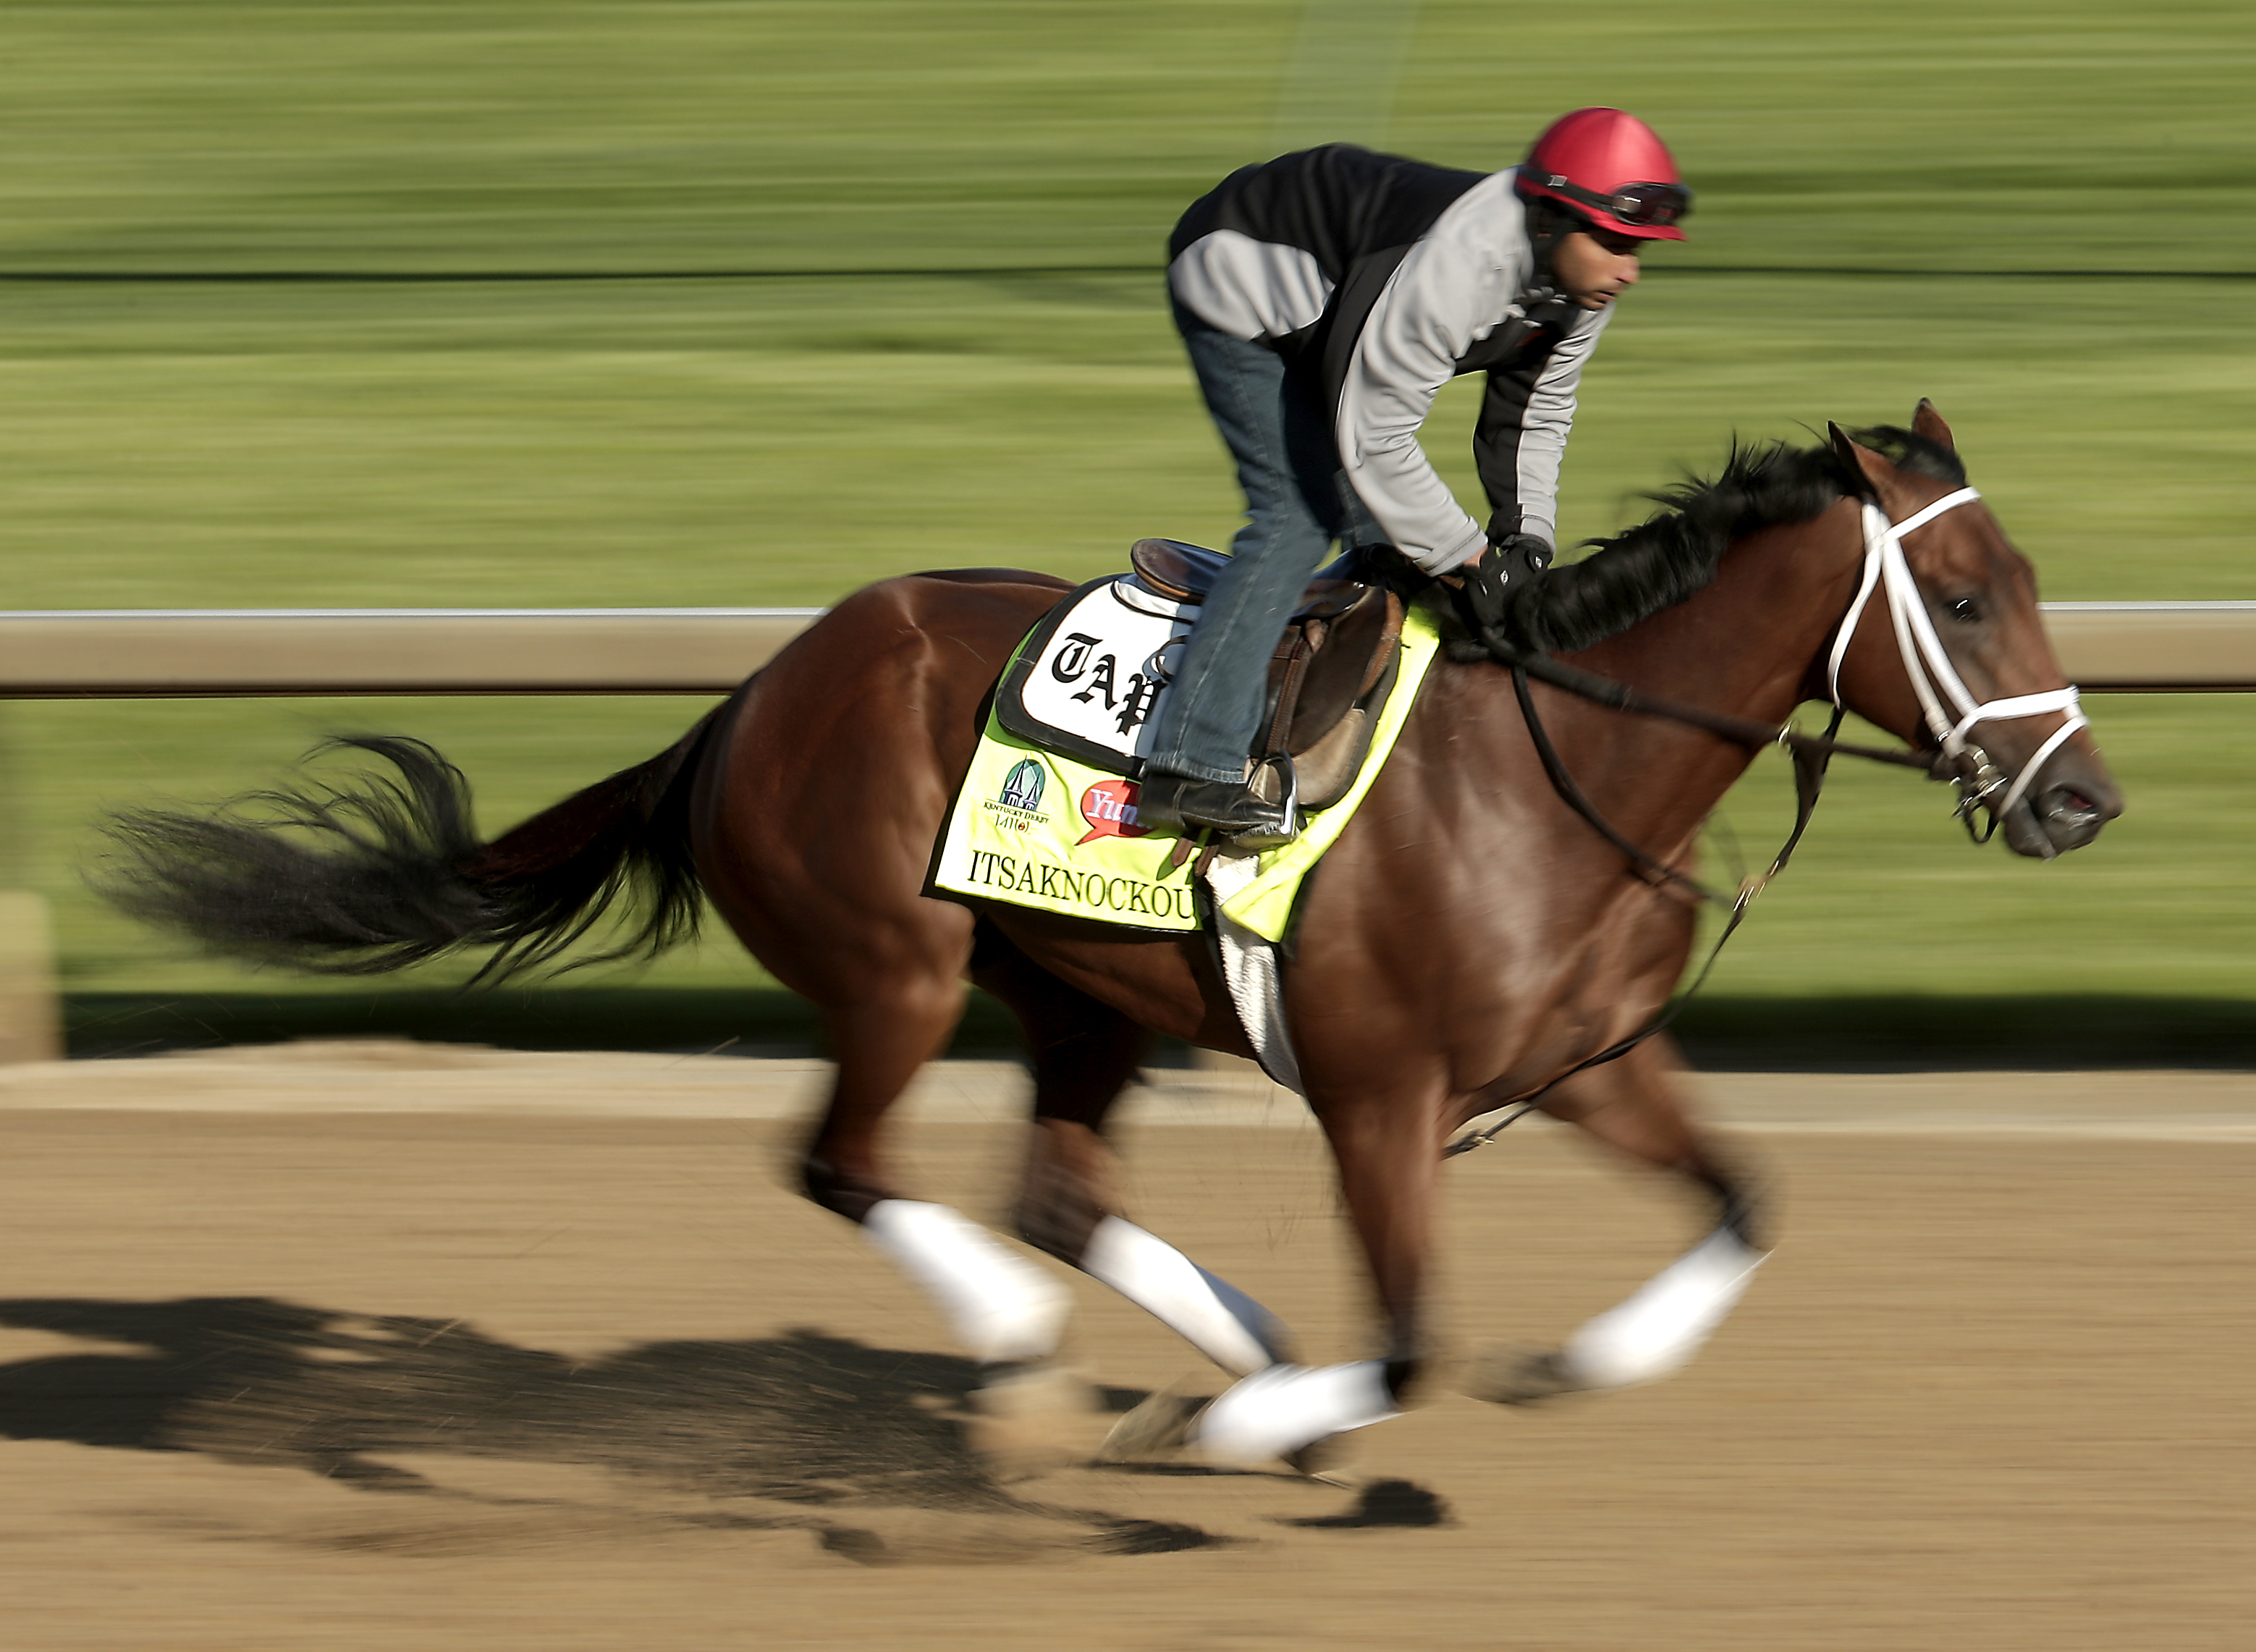 Kentucky Derby hopeful Itsaknockout is ridden by exercise rider Carlos Cano during a morning workout at Churchill Downs Tuesday, April 28, 2015, in Louisville, Ky. (AP Photo/Charlie Riedel)